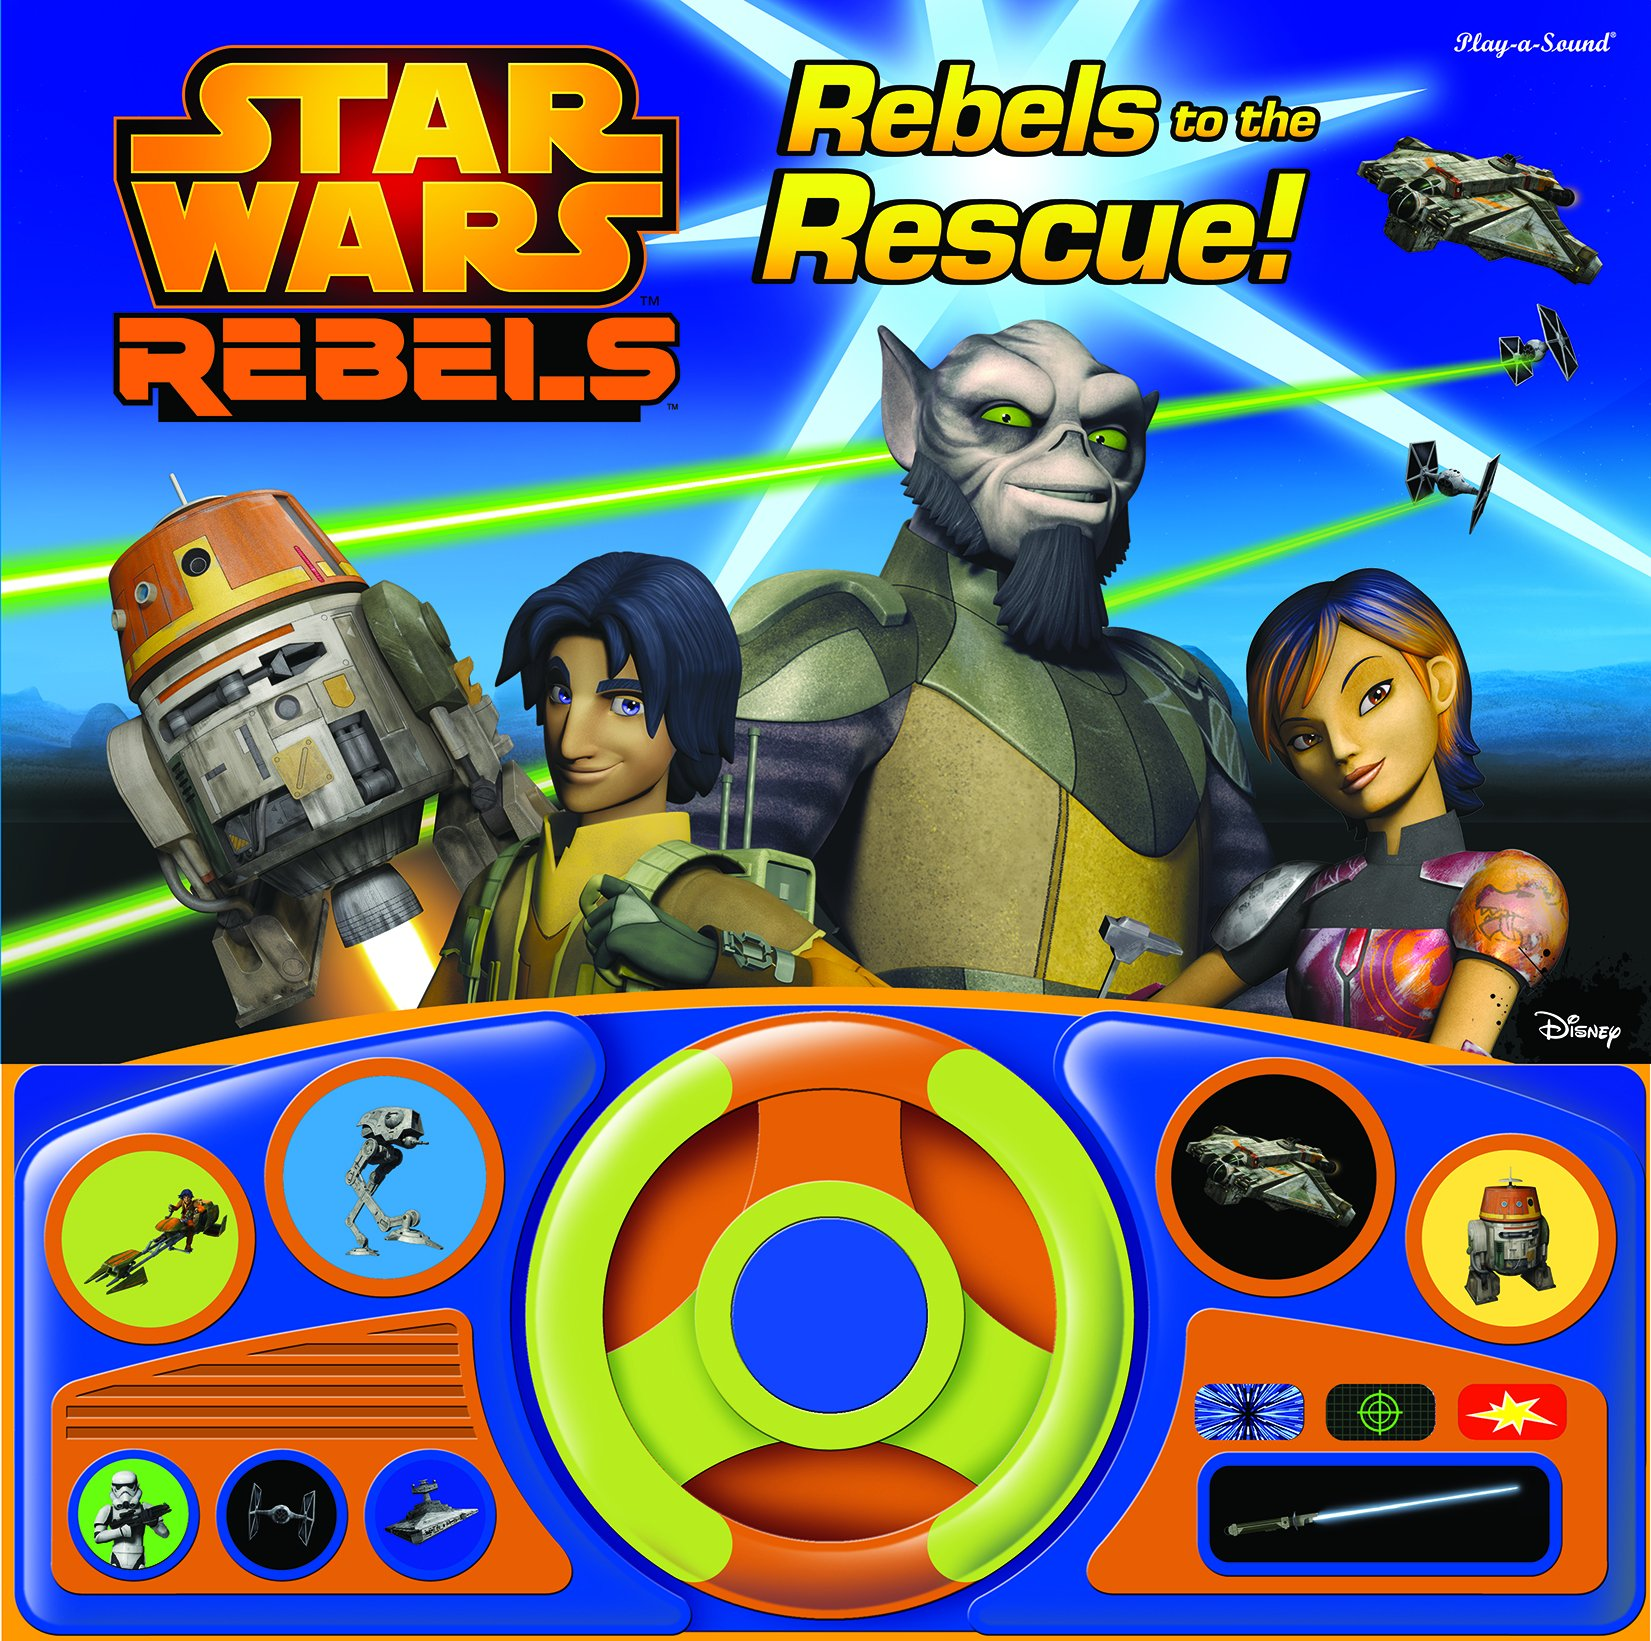 Star Wars Rebels: Rebels to the Rescue